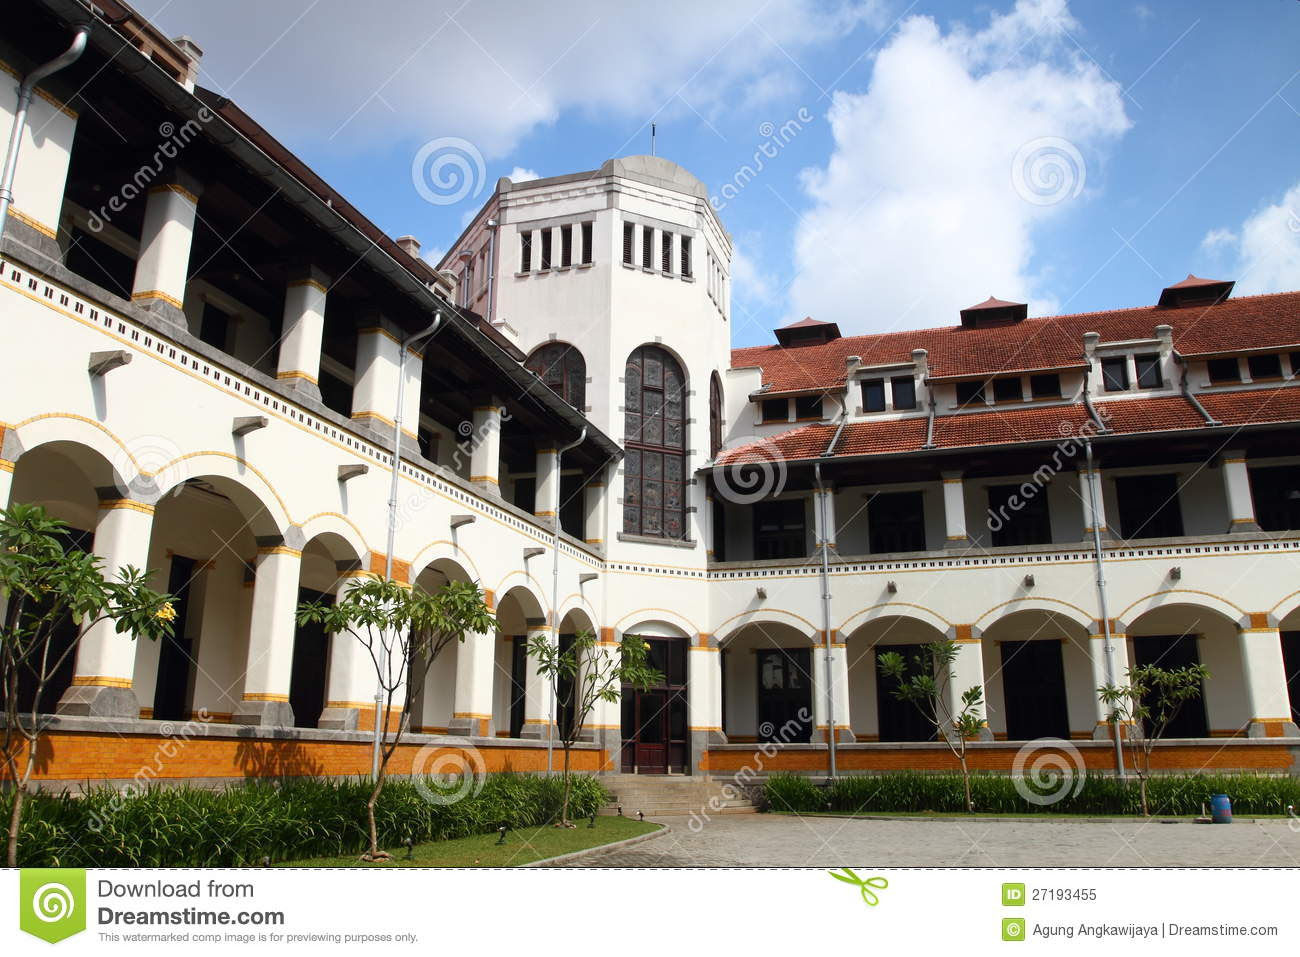 Lawang Sewu Semarang is an Old Dutch Mansion File:Lawang sewu.jpg Wikimedia Commons